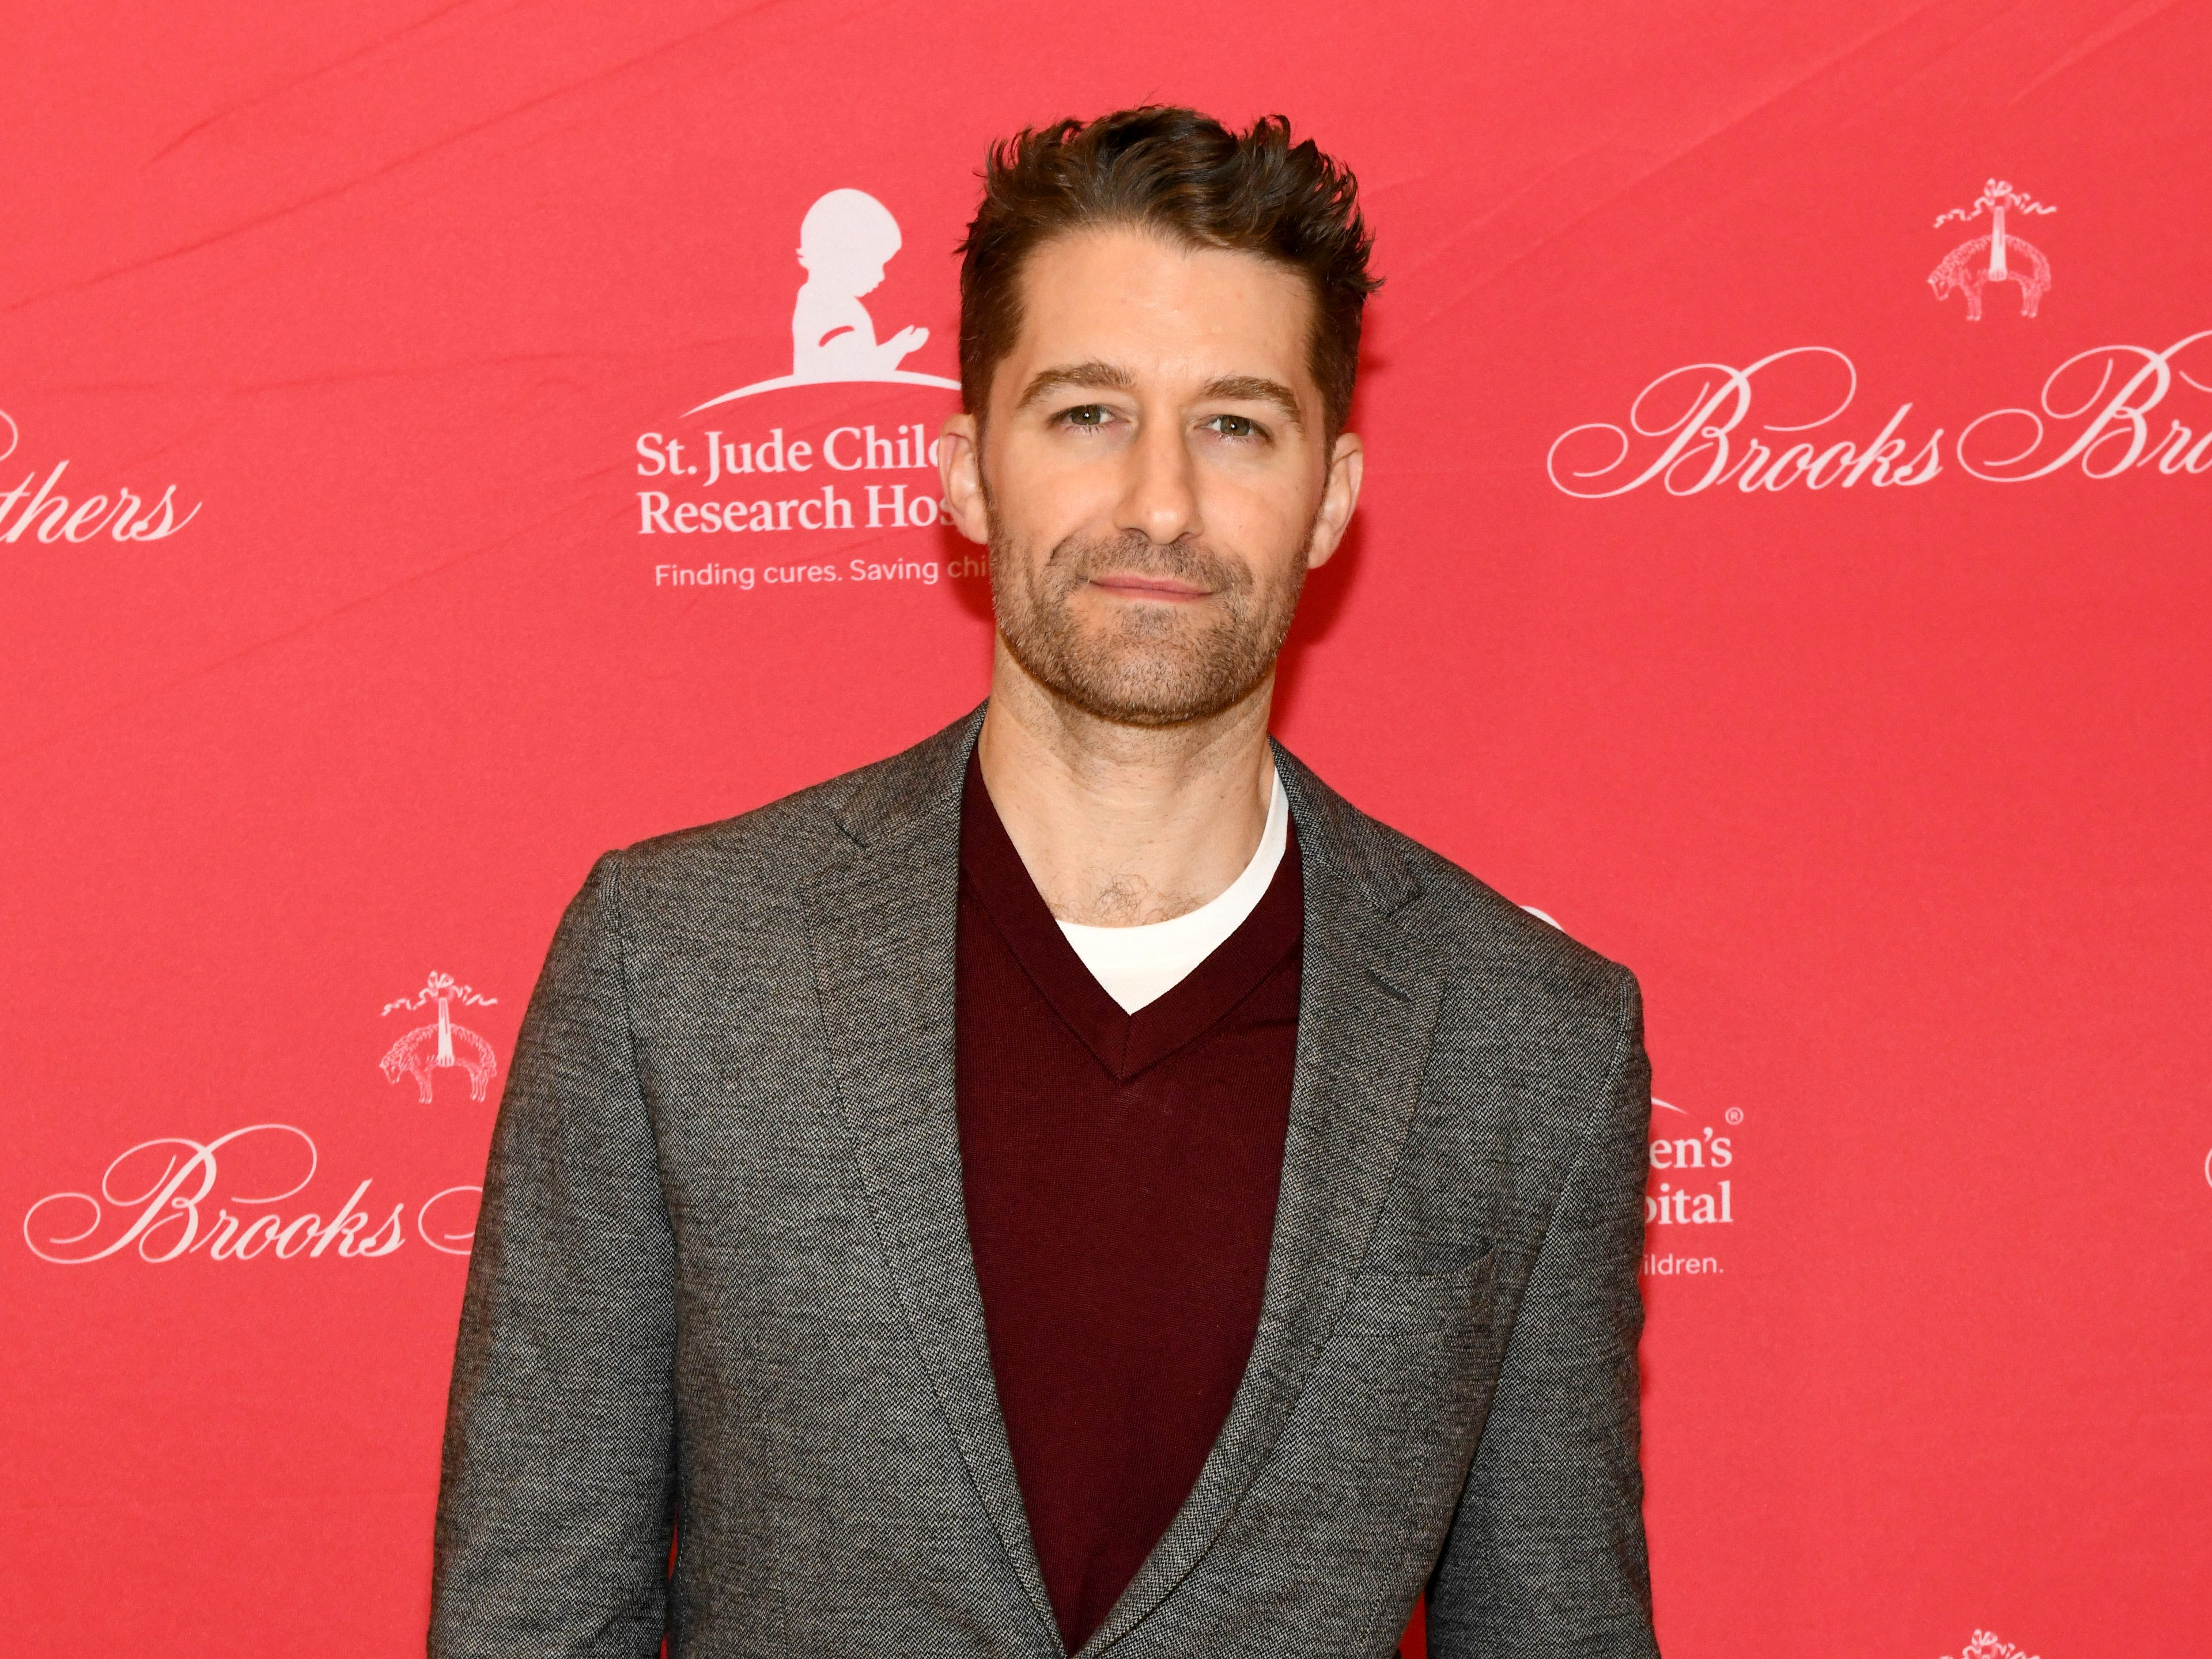 NEW YORK, NY - DECEMBER 18:  Matthew Morrison attends the Brooks Brothers And St Jude Children's Research Hospital Annual Holiday Celebration In New York City on December 18, 2018 in New York City.  (Photo by Craig Barritt/Getty Images for Brooks Brothers) ORG XMIT: 775269682 ORIG FILE ID: 1074382180